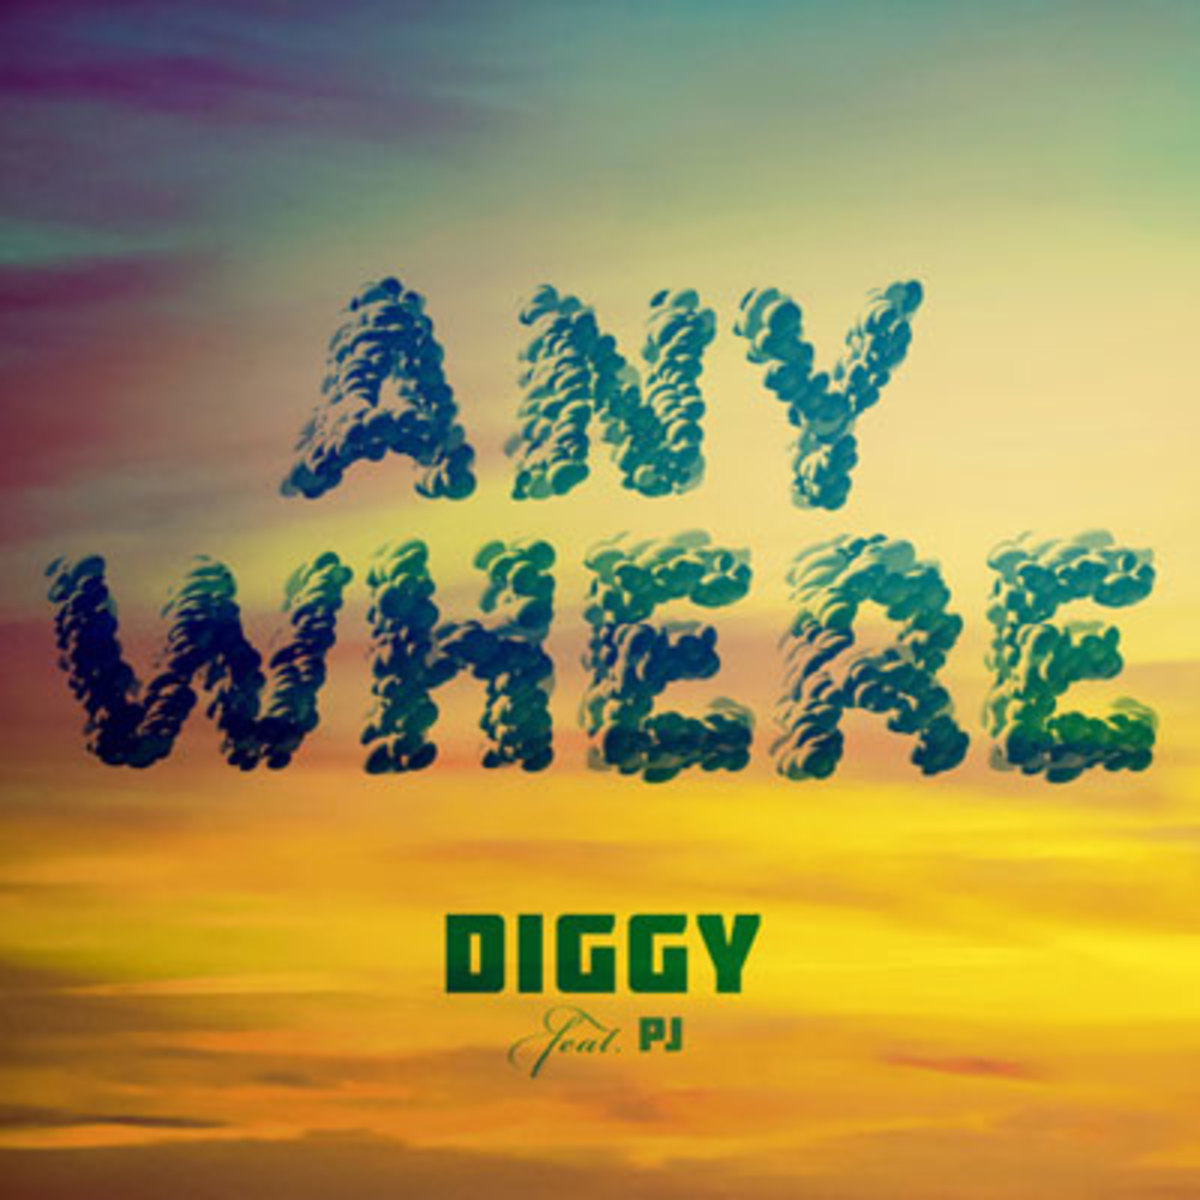 diggy-anywhere.jpg